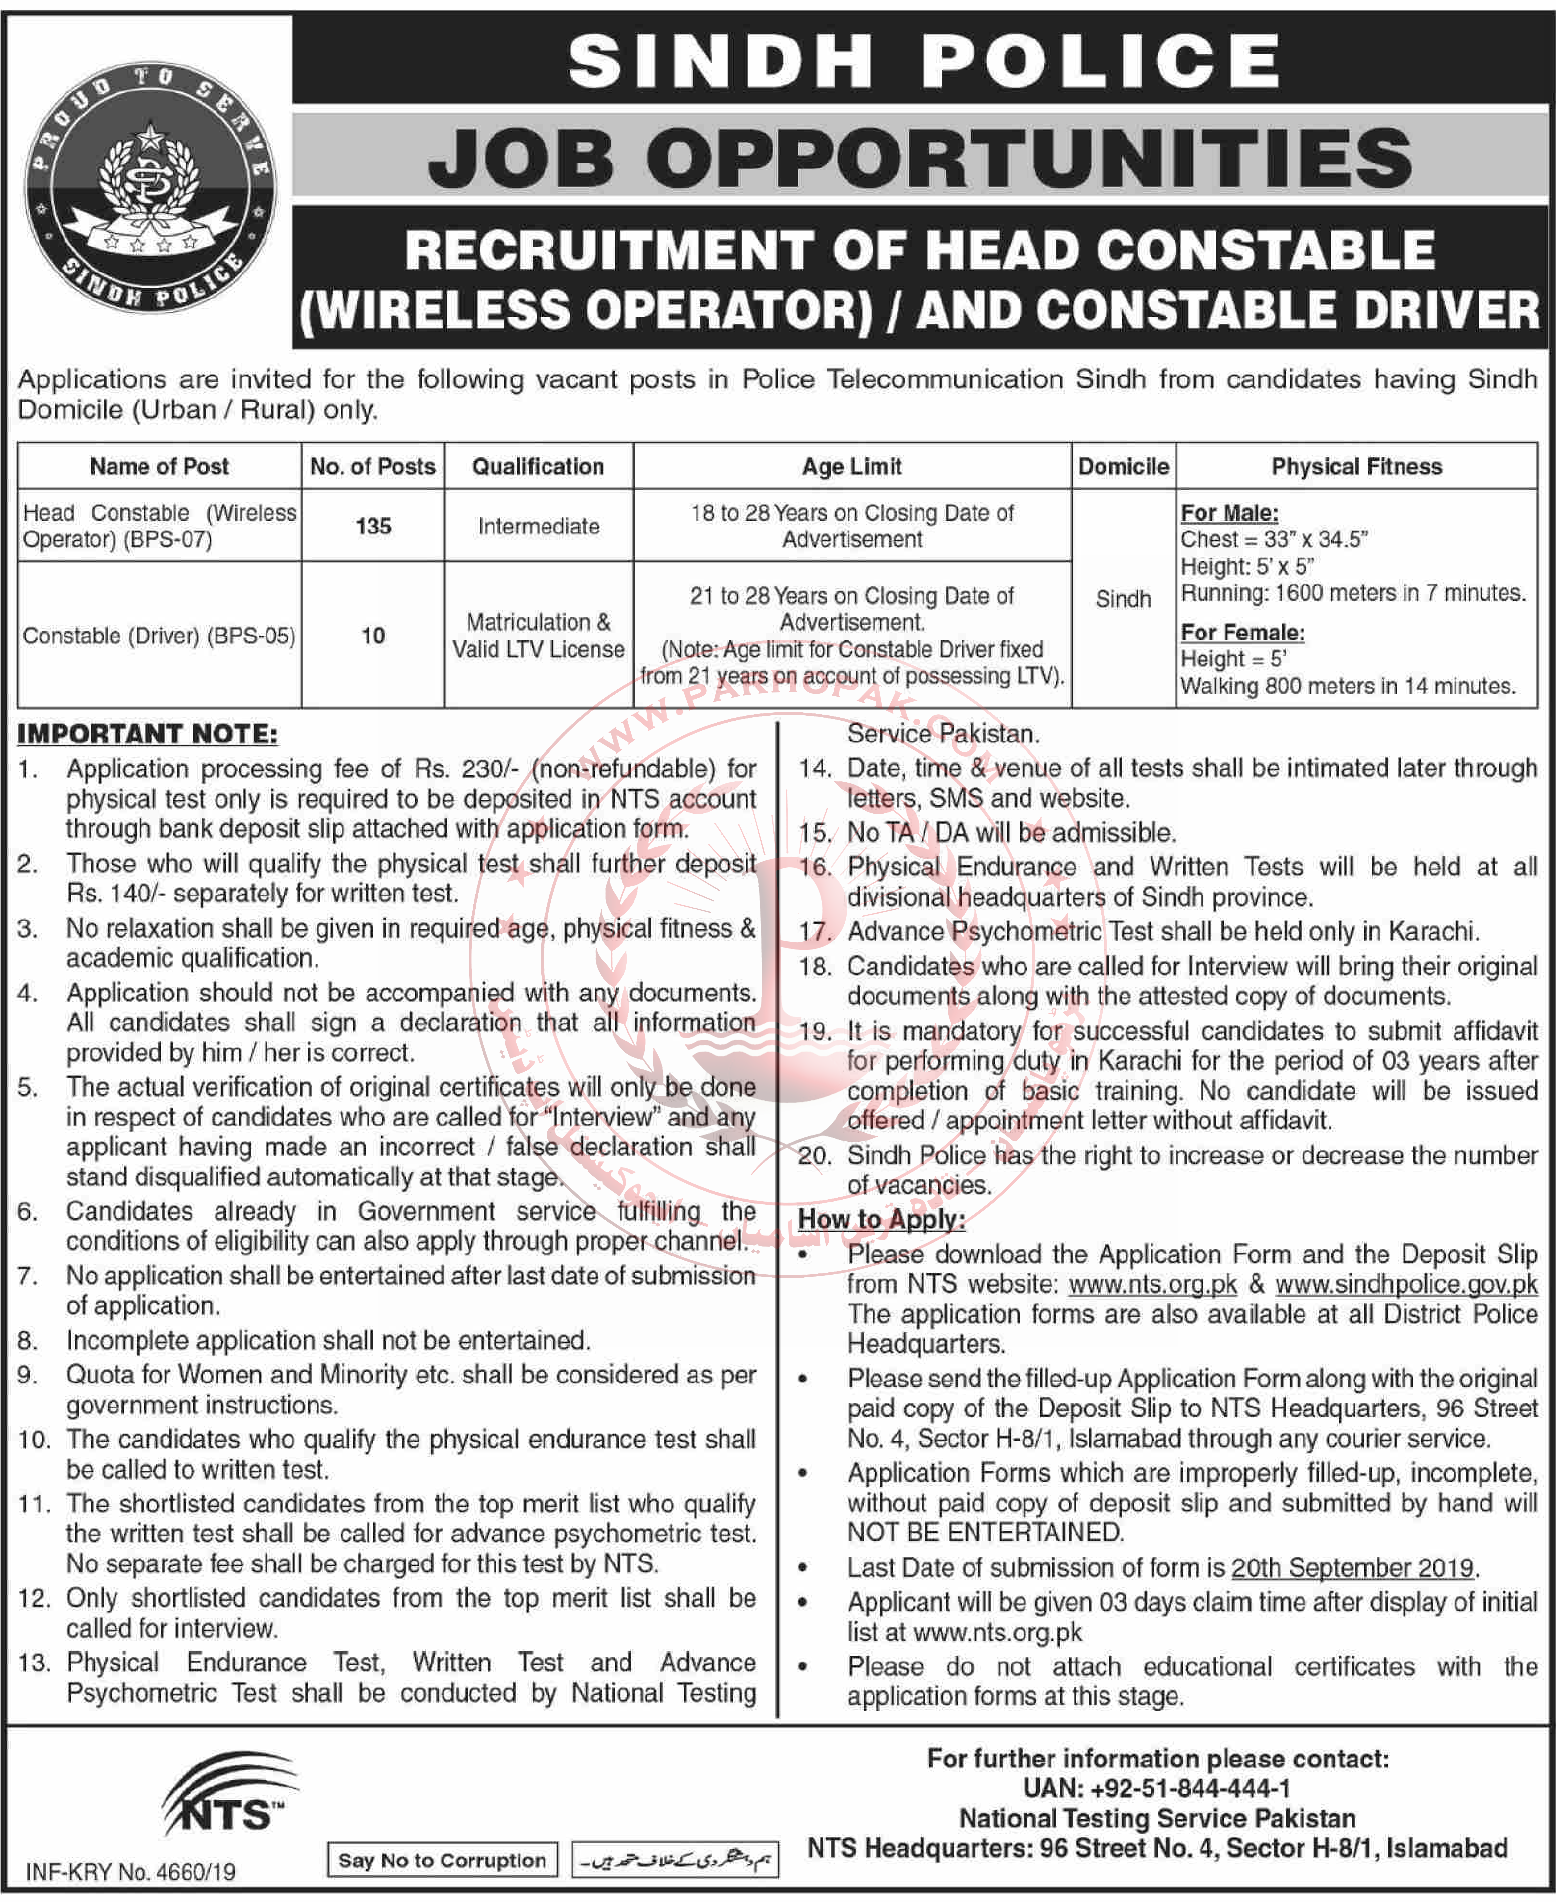 Sindh Police Jobs August 2019 - Govt of Sindh - CSS Forums